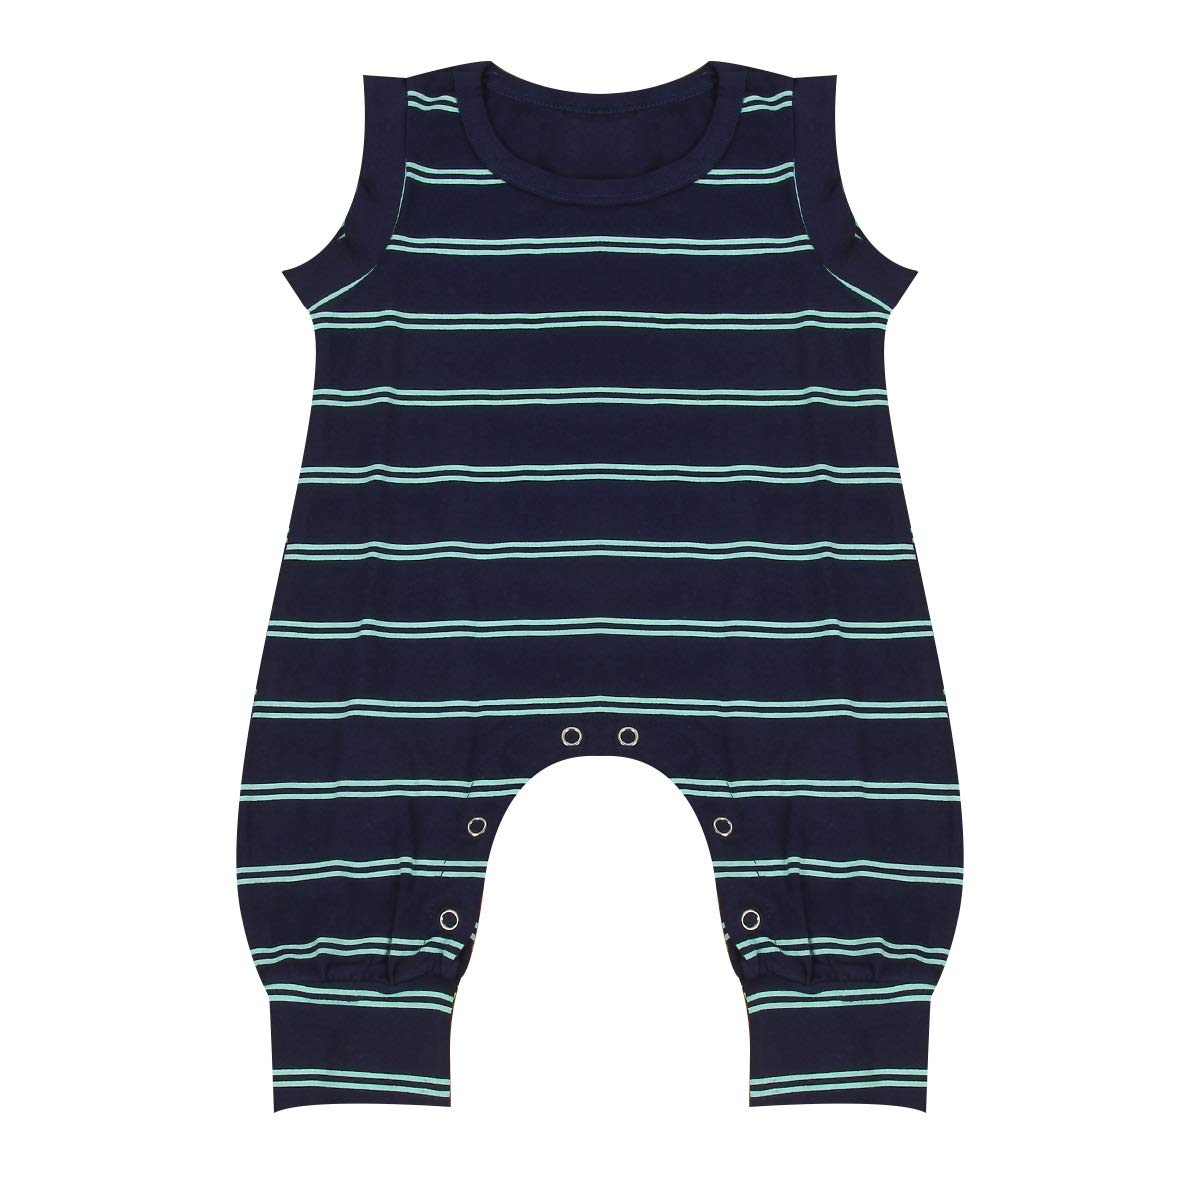 Stripe Sleeveless Romper Outfit Clothes Suit for Infant Toddler Baby Kid Boy (Color : 80) Tabpole